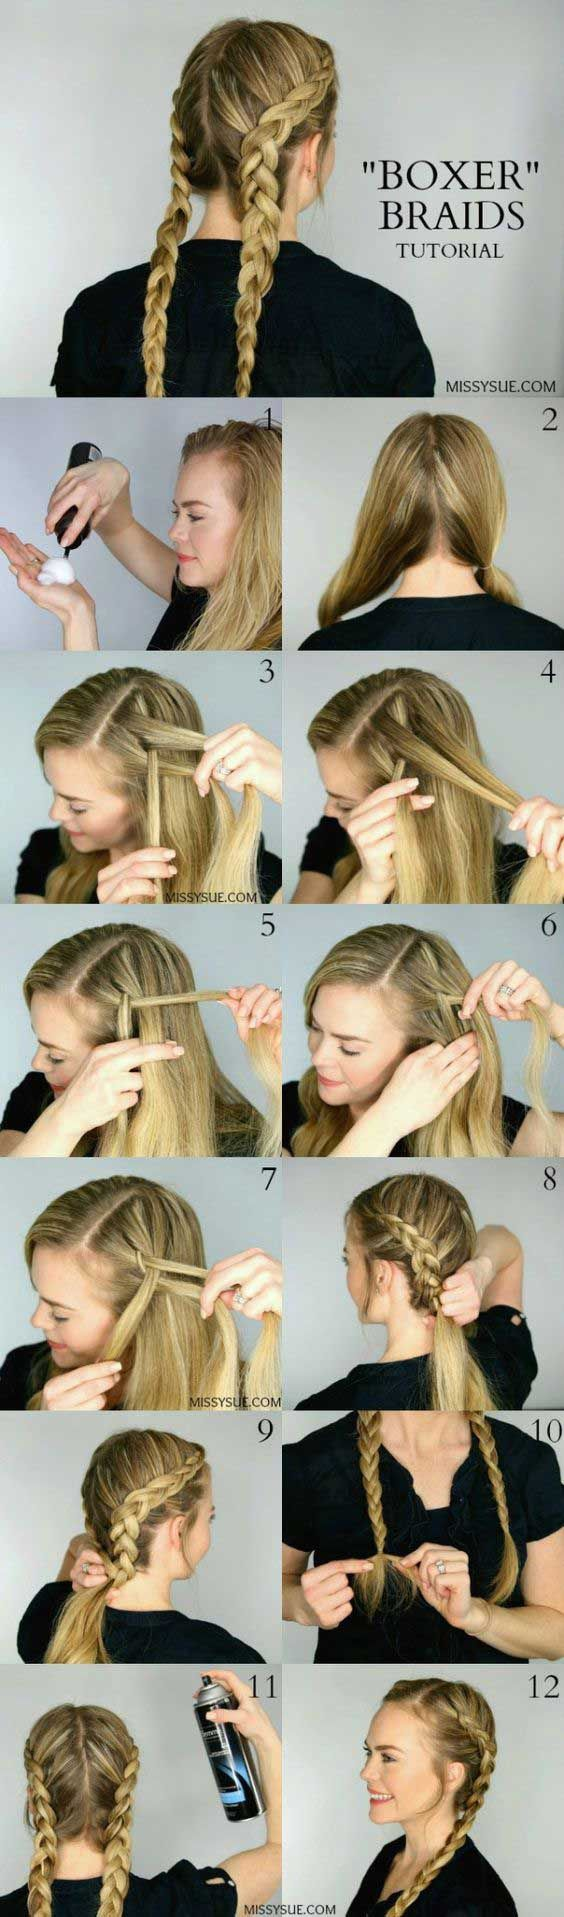 16 Easy Tutorials On How To Do The Most Popular Hairstyles For Summer 2016  Dutch Braid Tutorialsdouble French